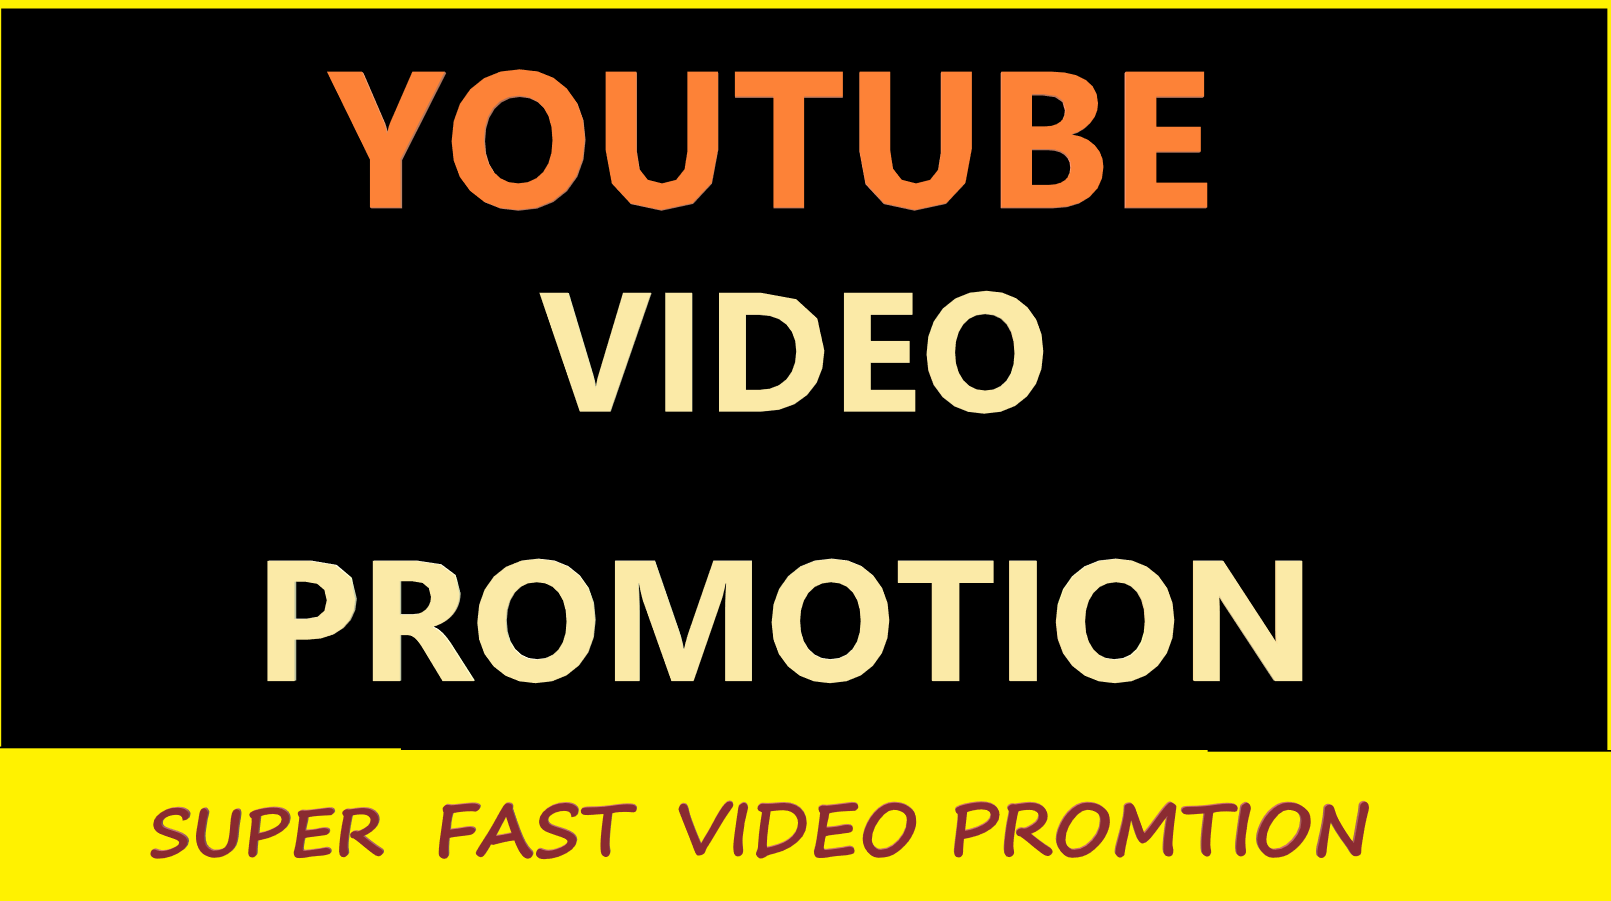 I will do massive YouTube video promotion Improve video ranking